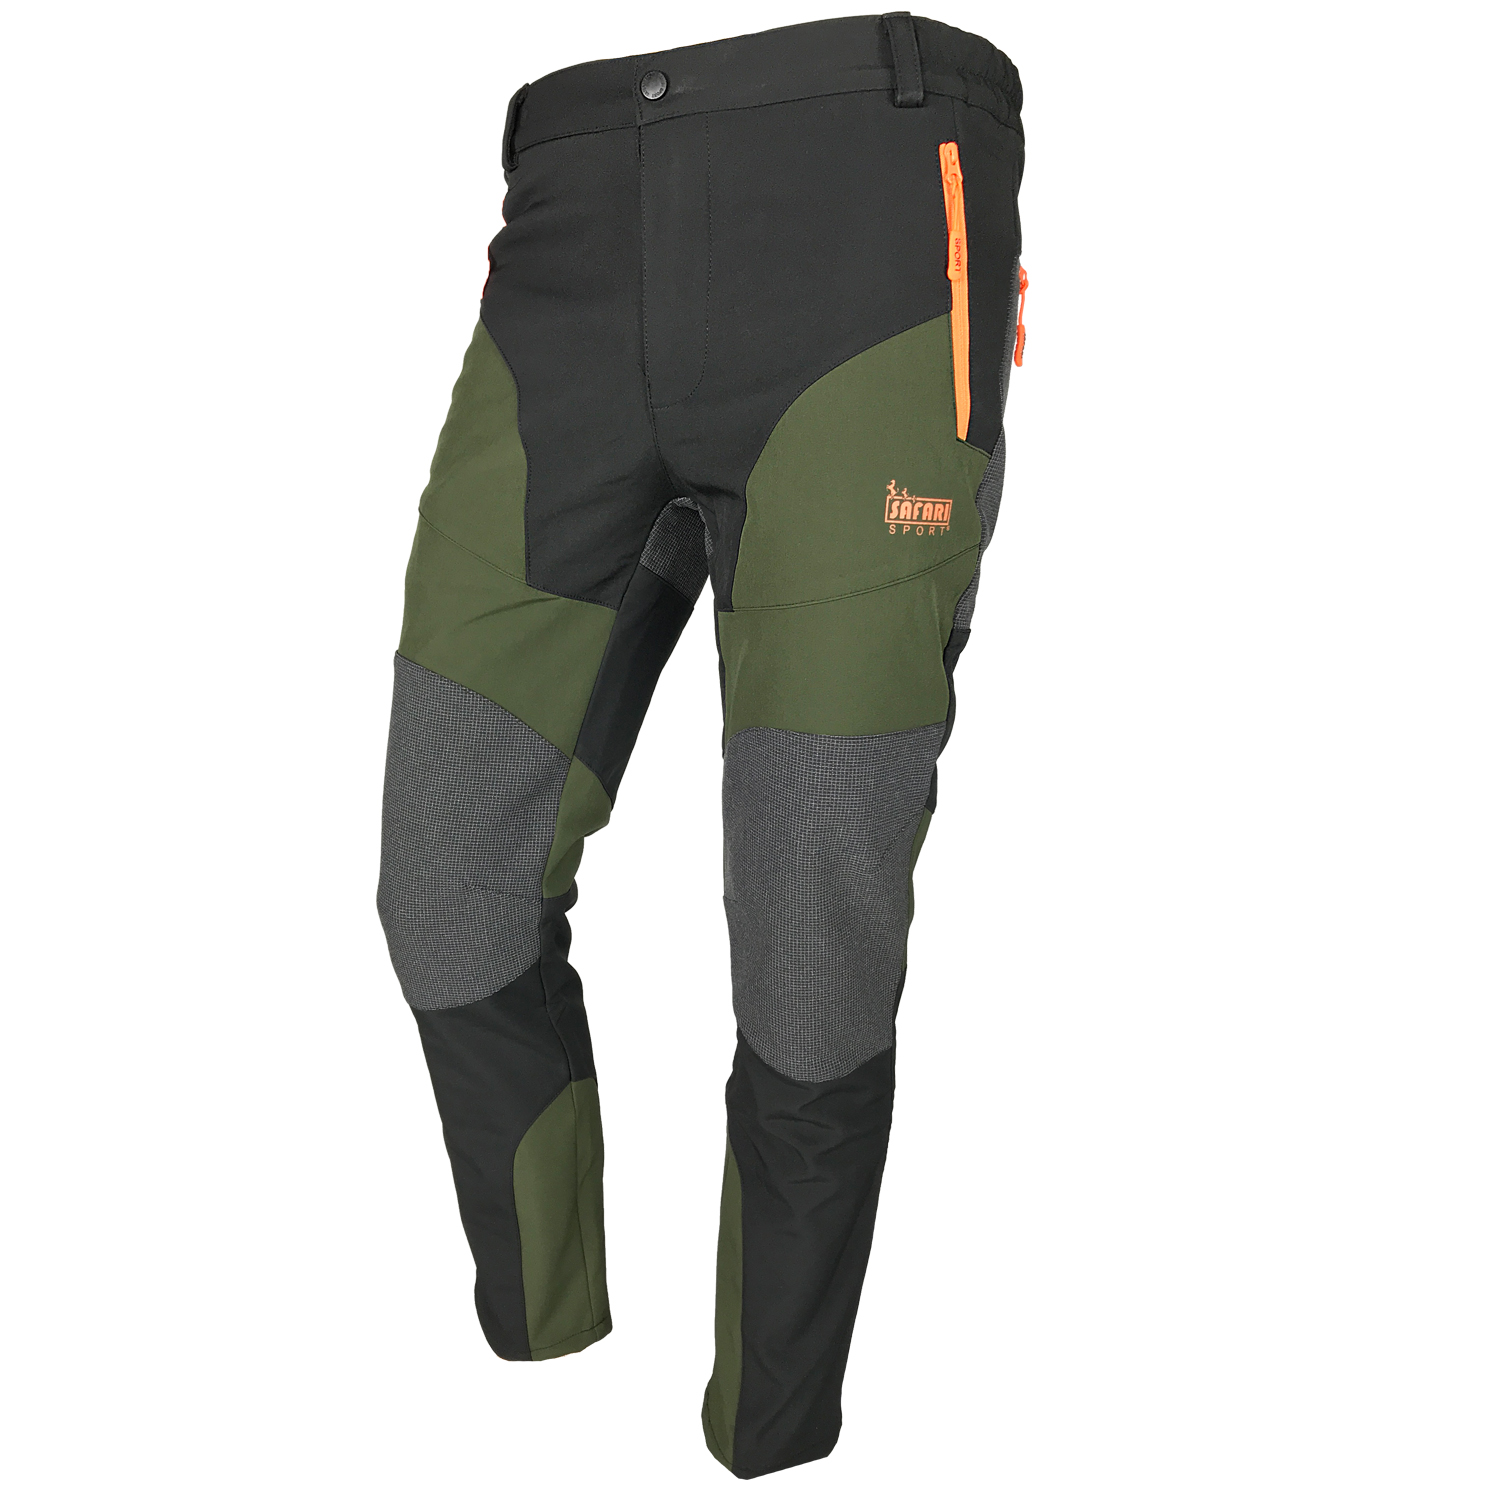 Pants trousers hunting men outdoor softshell water repellent spandex rain